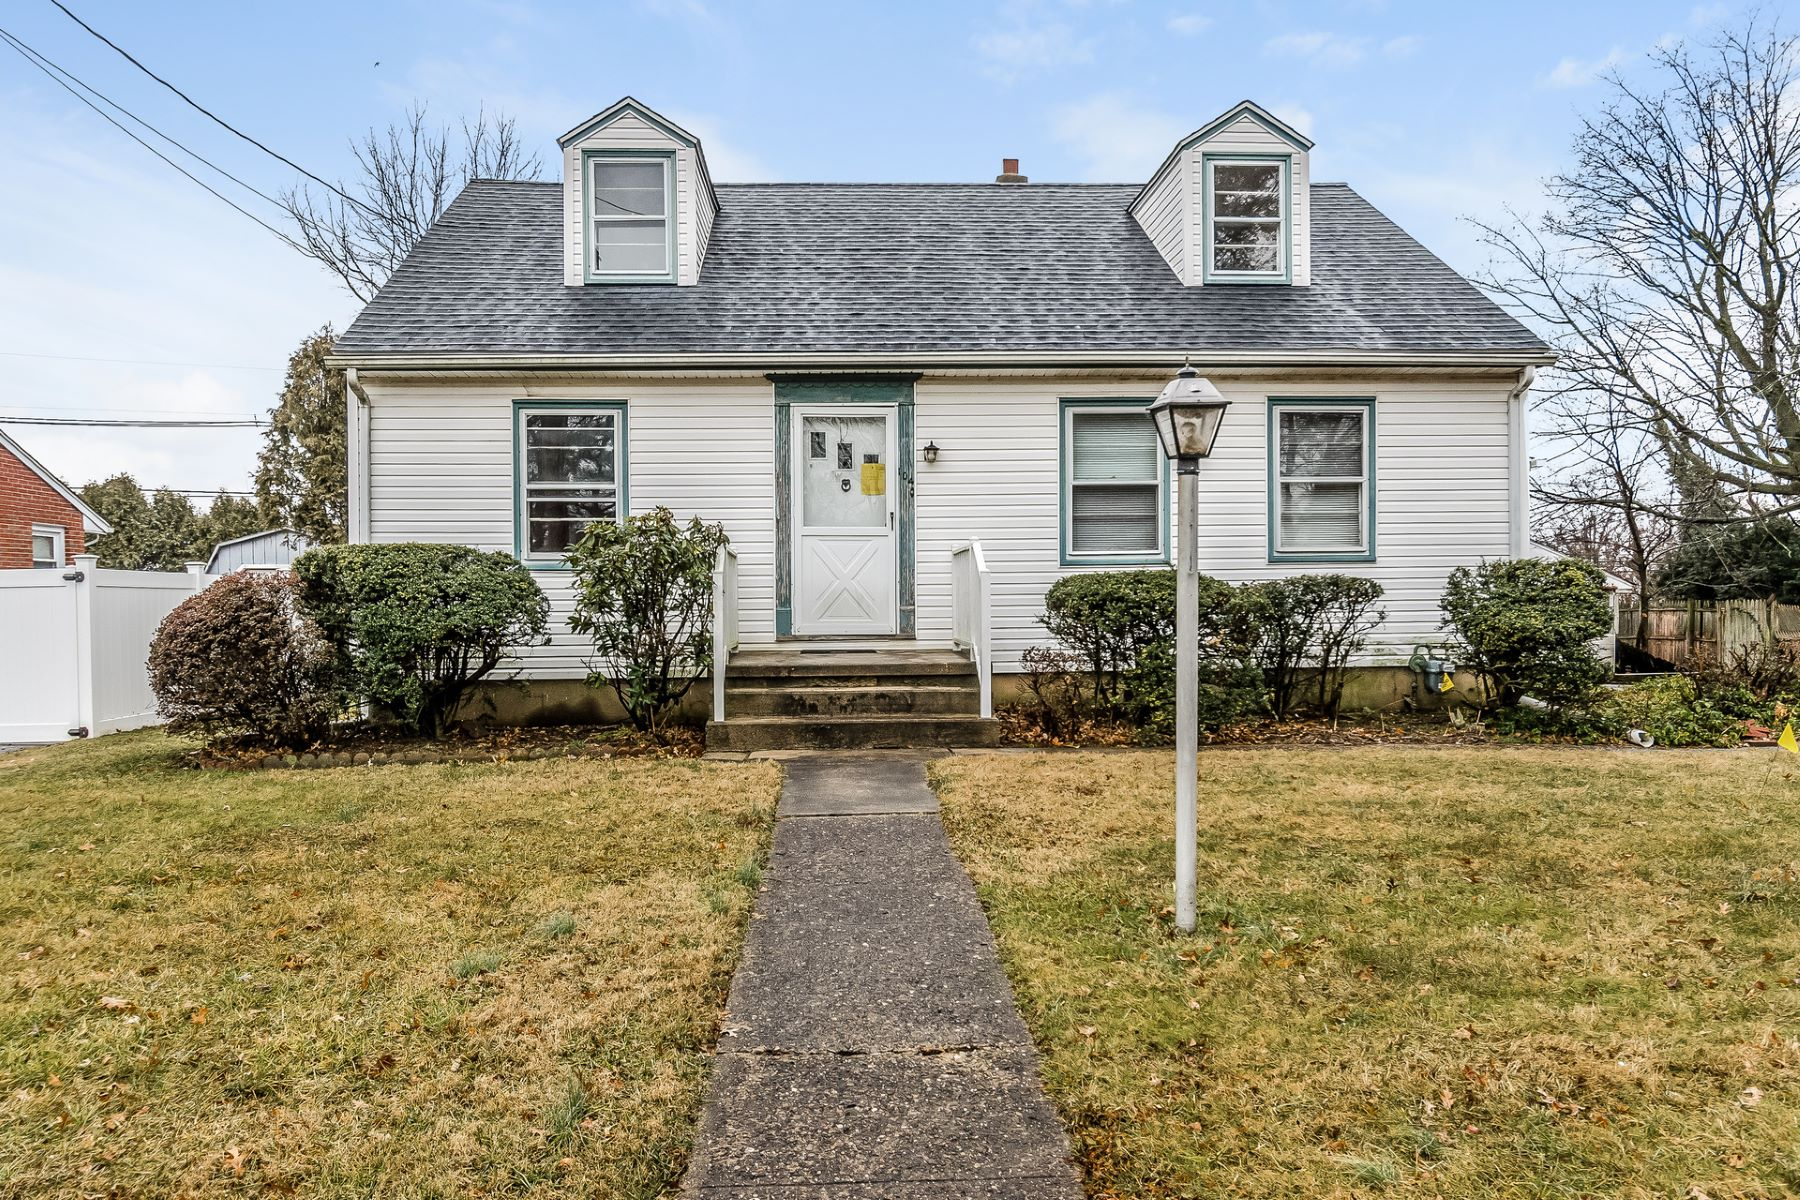 Single Family Home for Sale at Classic Cape on Large Lot 104 South Burtis Avenue, Hamilton, New Jersey 08690 United States